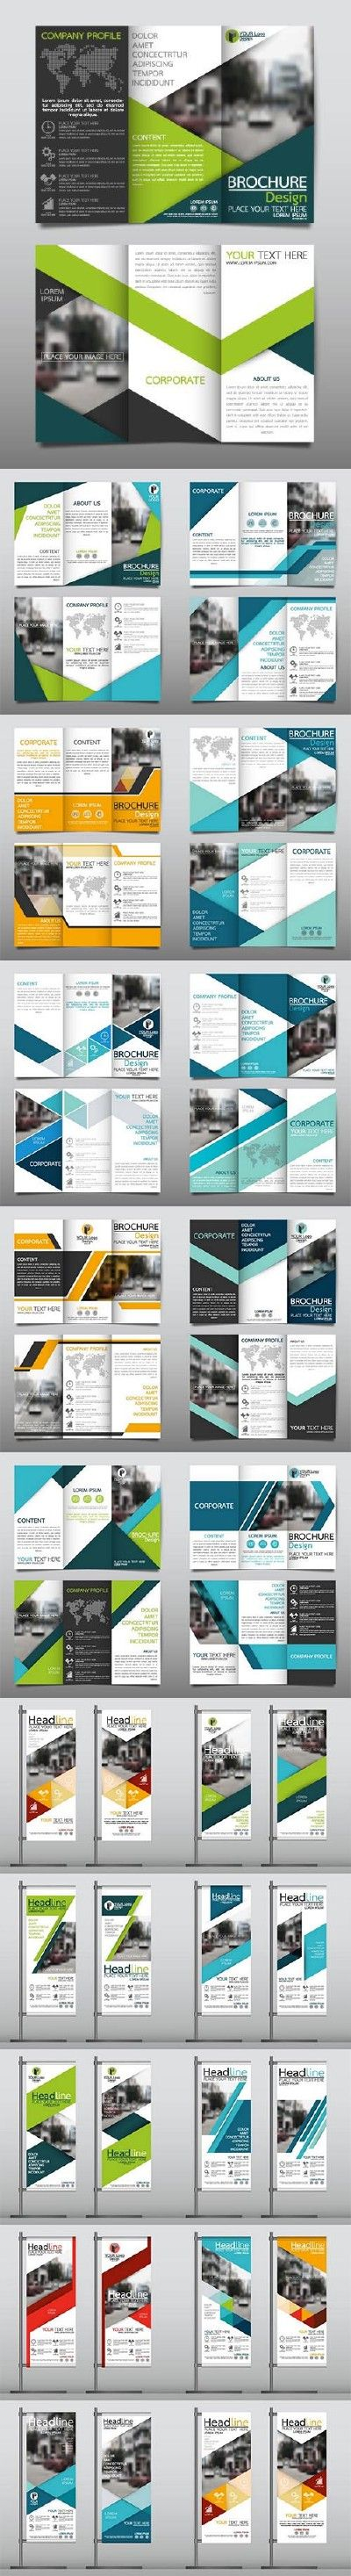 Roll up banner and tri fold brochure                                                                                                                                                                                 More